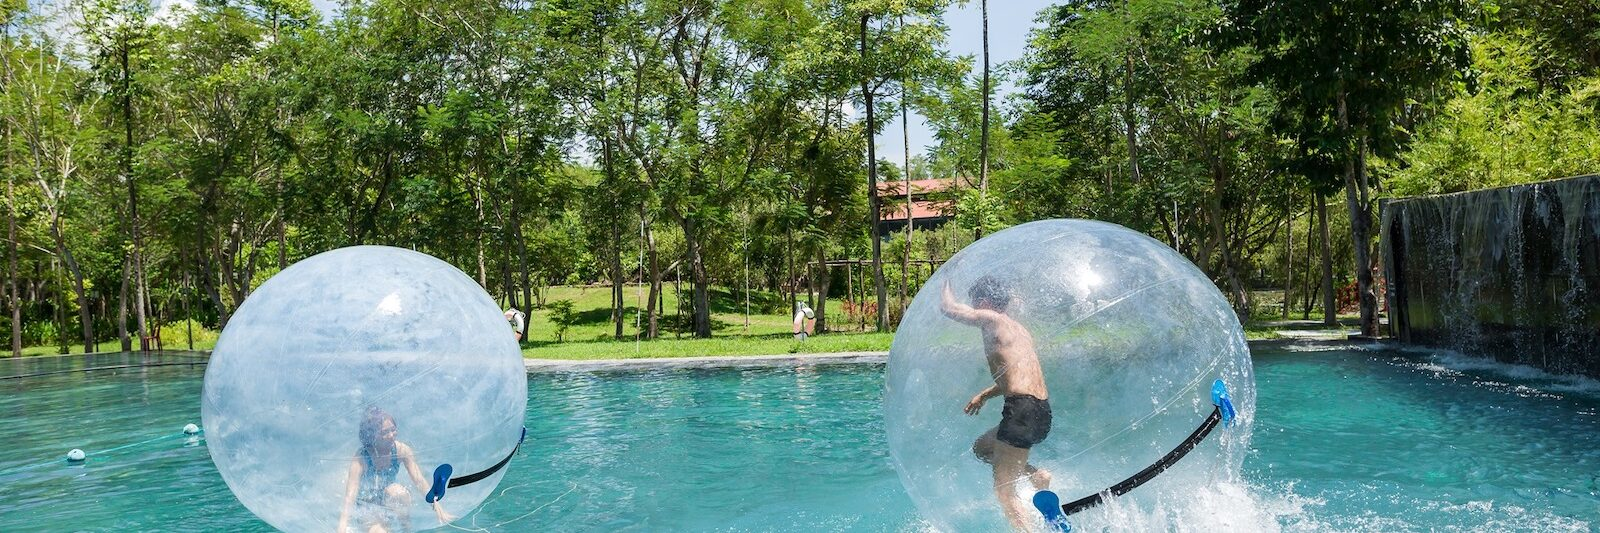 Image of people playing a water game in inflatable balls at Alba Wellness Valley in Hue, Vietnam